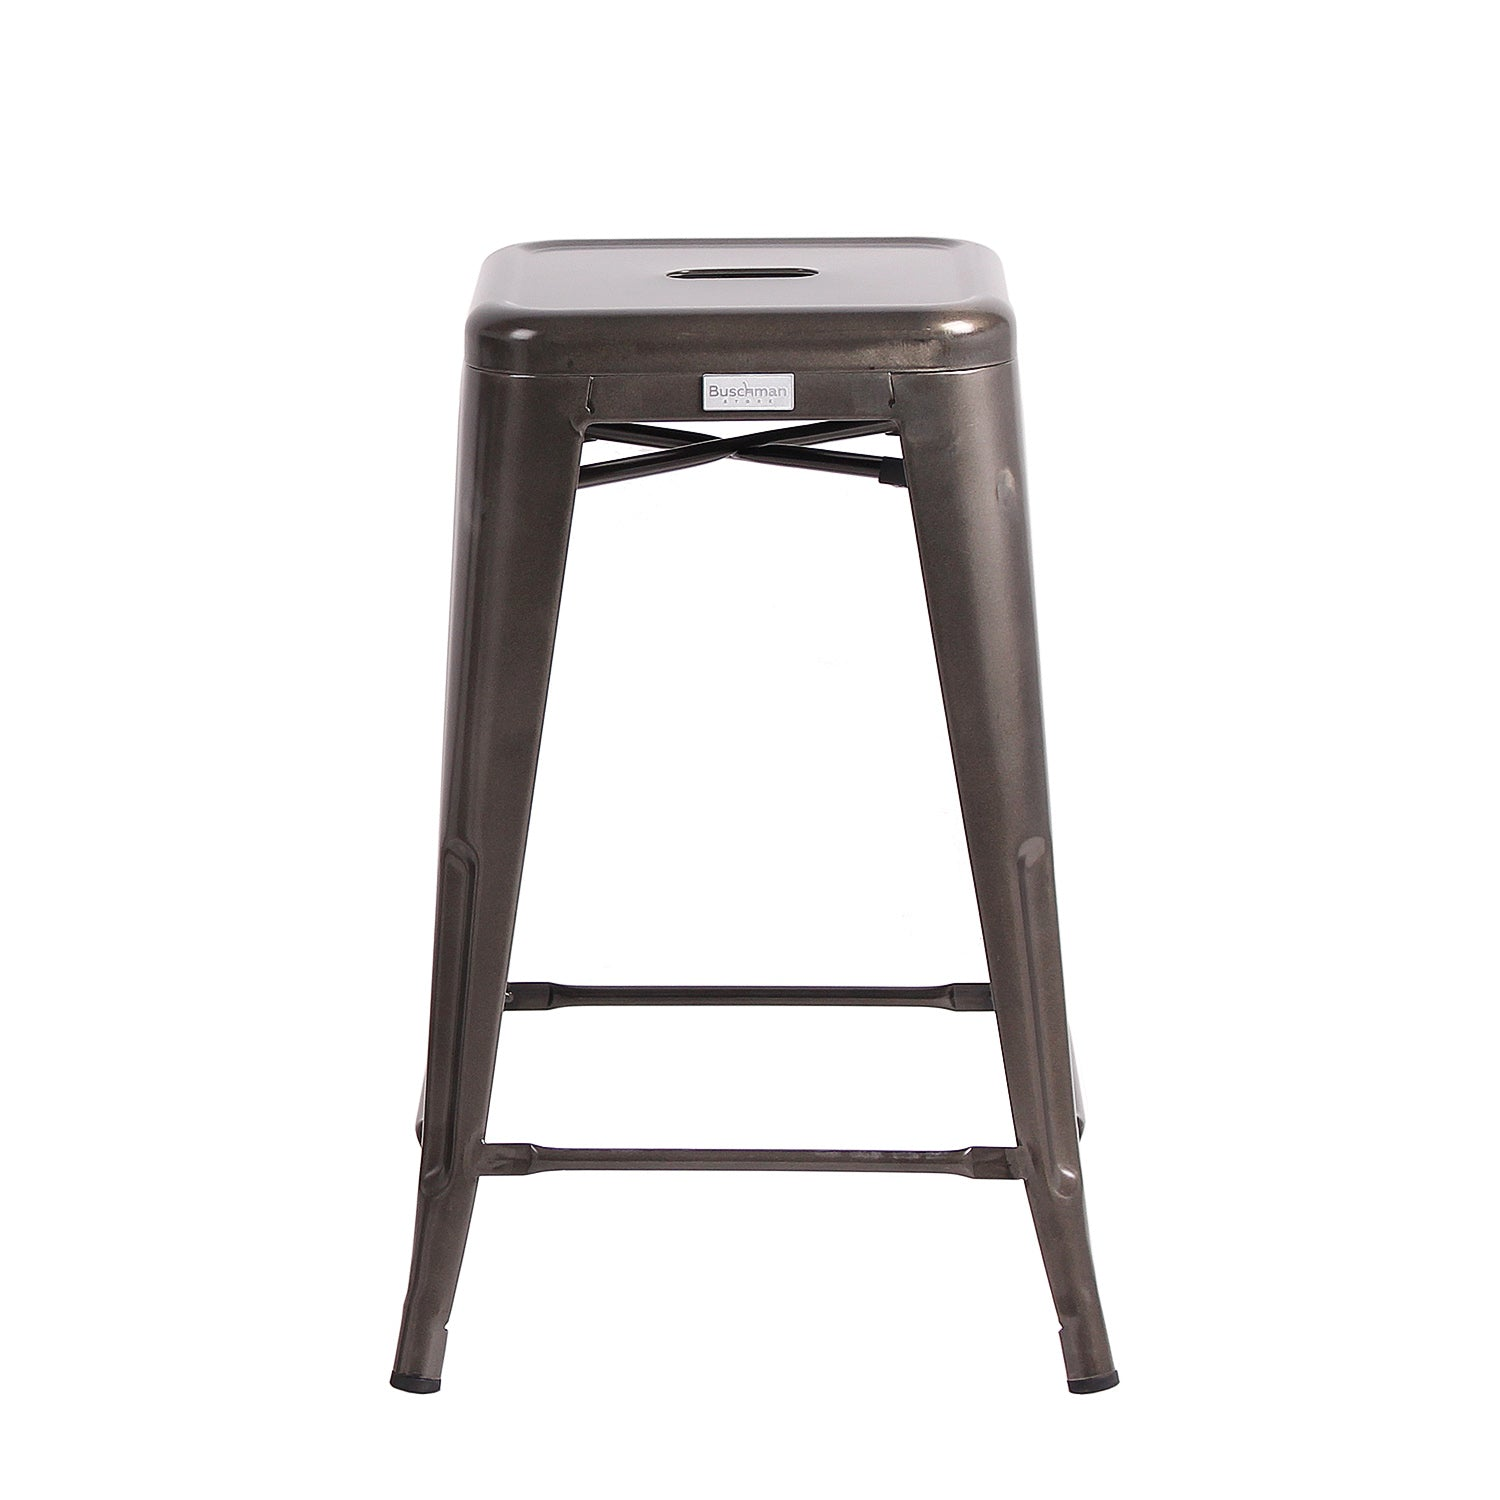 Prime Buschman Set Of 4 Gun Metal 24 Inch Counter Height Metal Bar Stools Indoor Outdoor Stackable Ibusinesslaw Wood Chair Design Ideas Ibusinesslaworg